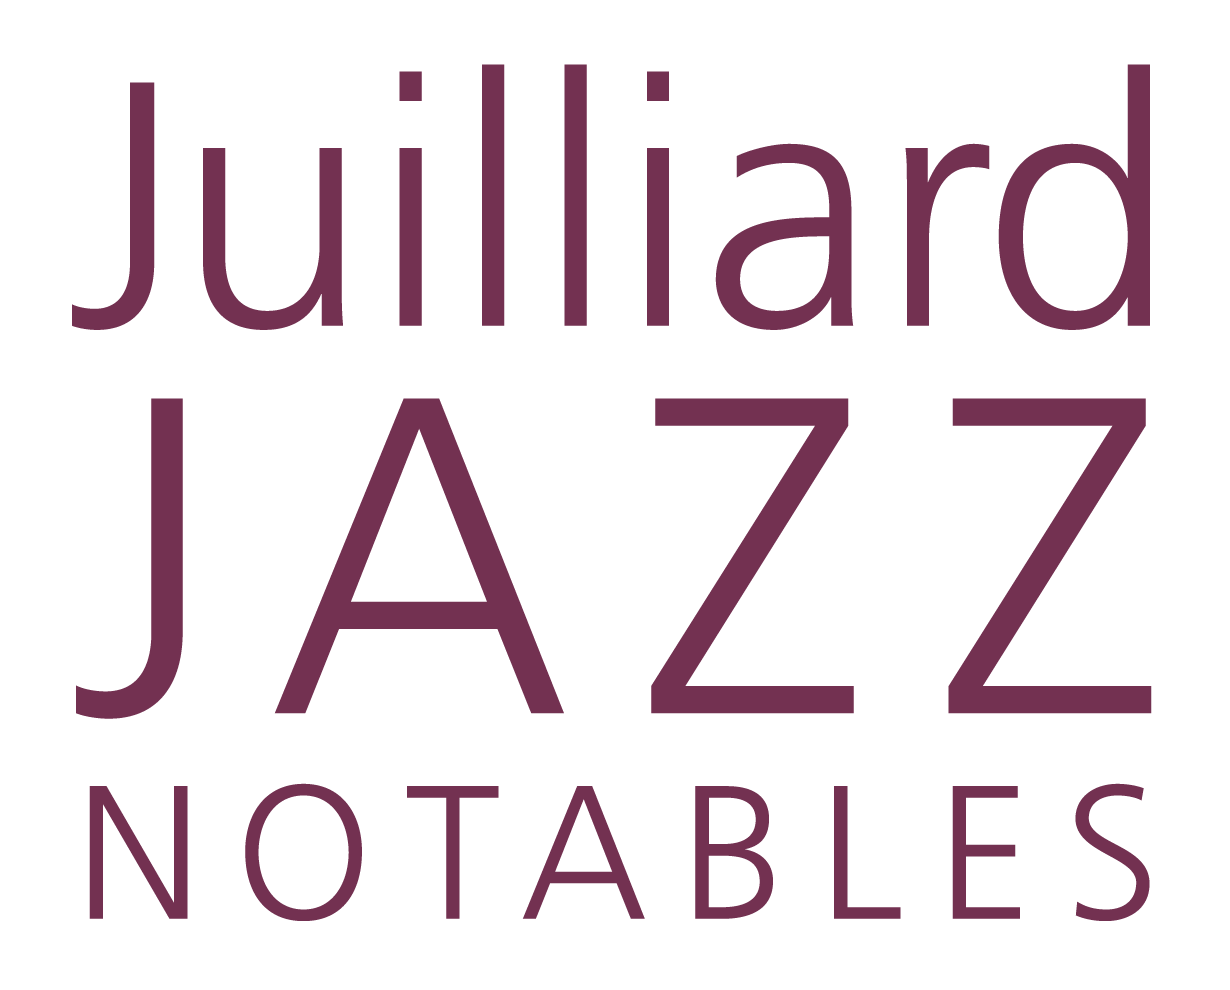 Juilliard Jazz Notable Logo